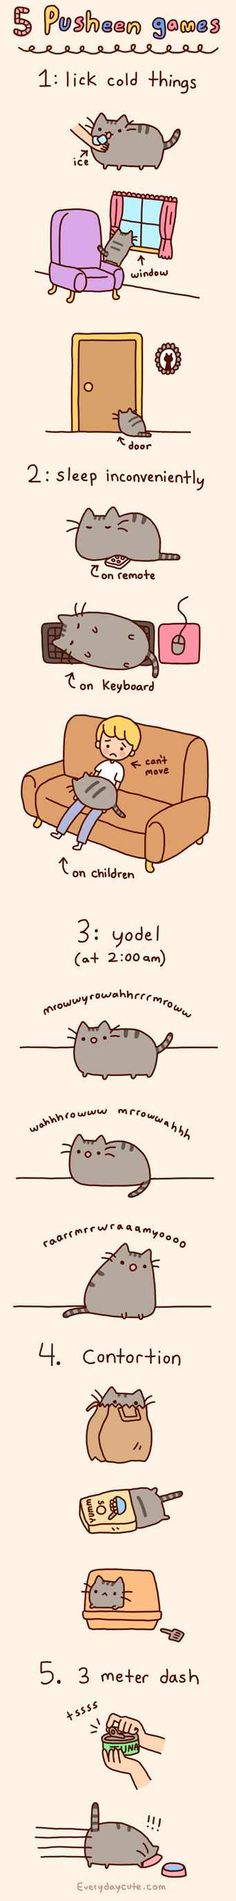 Pusheen games